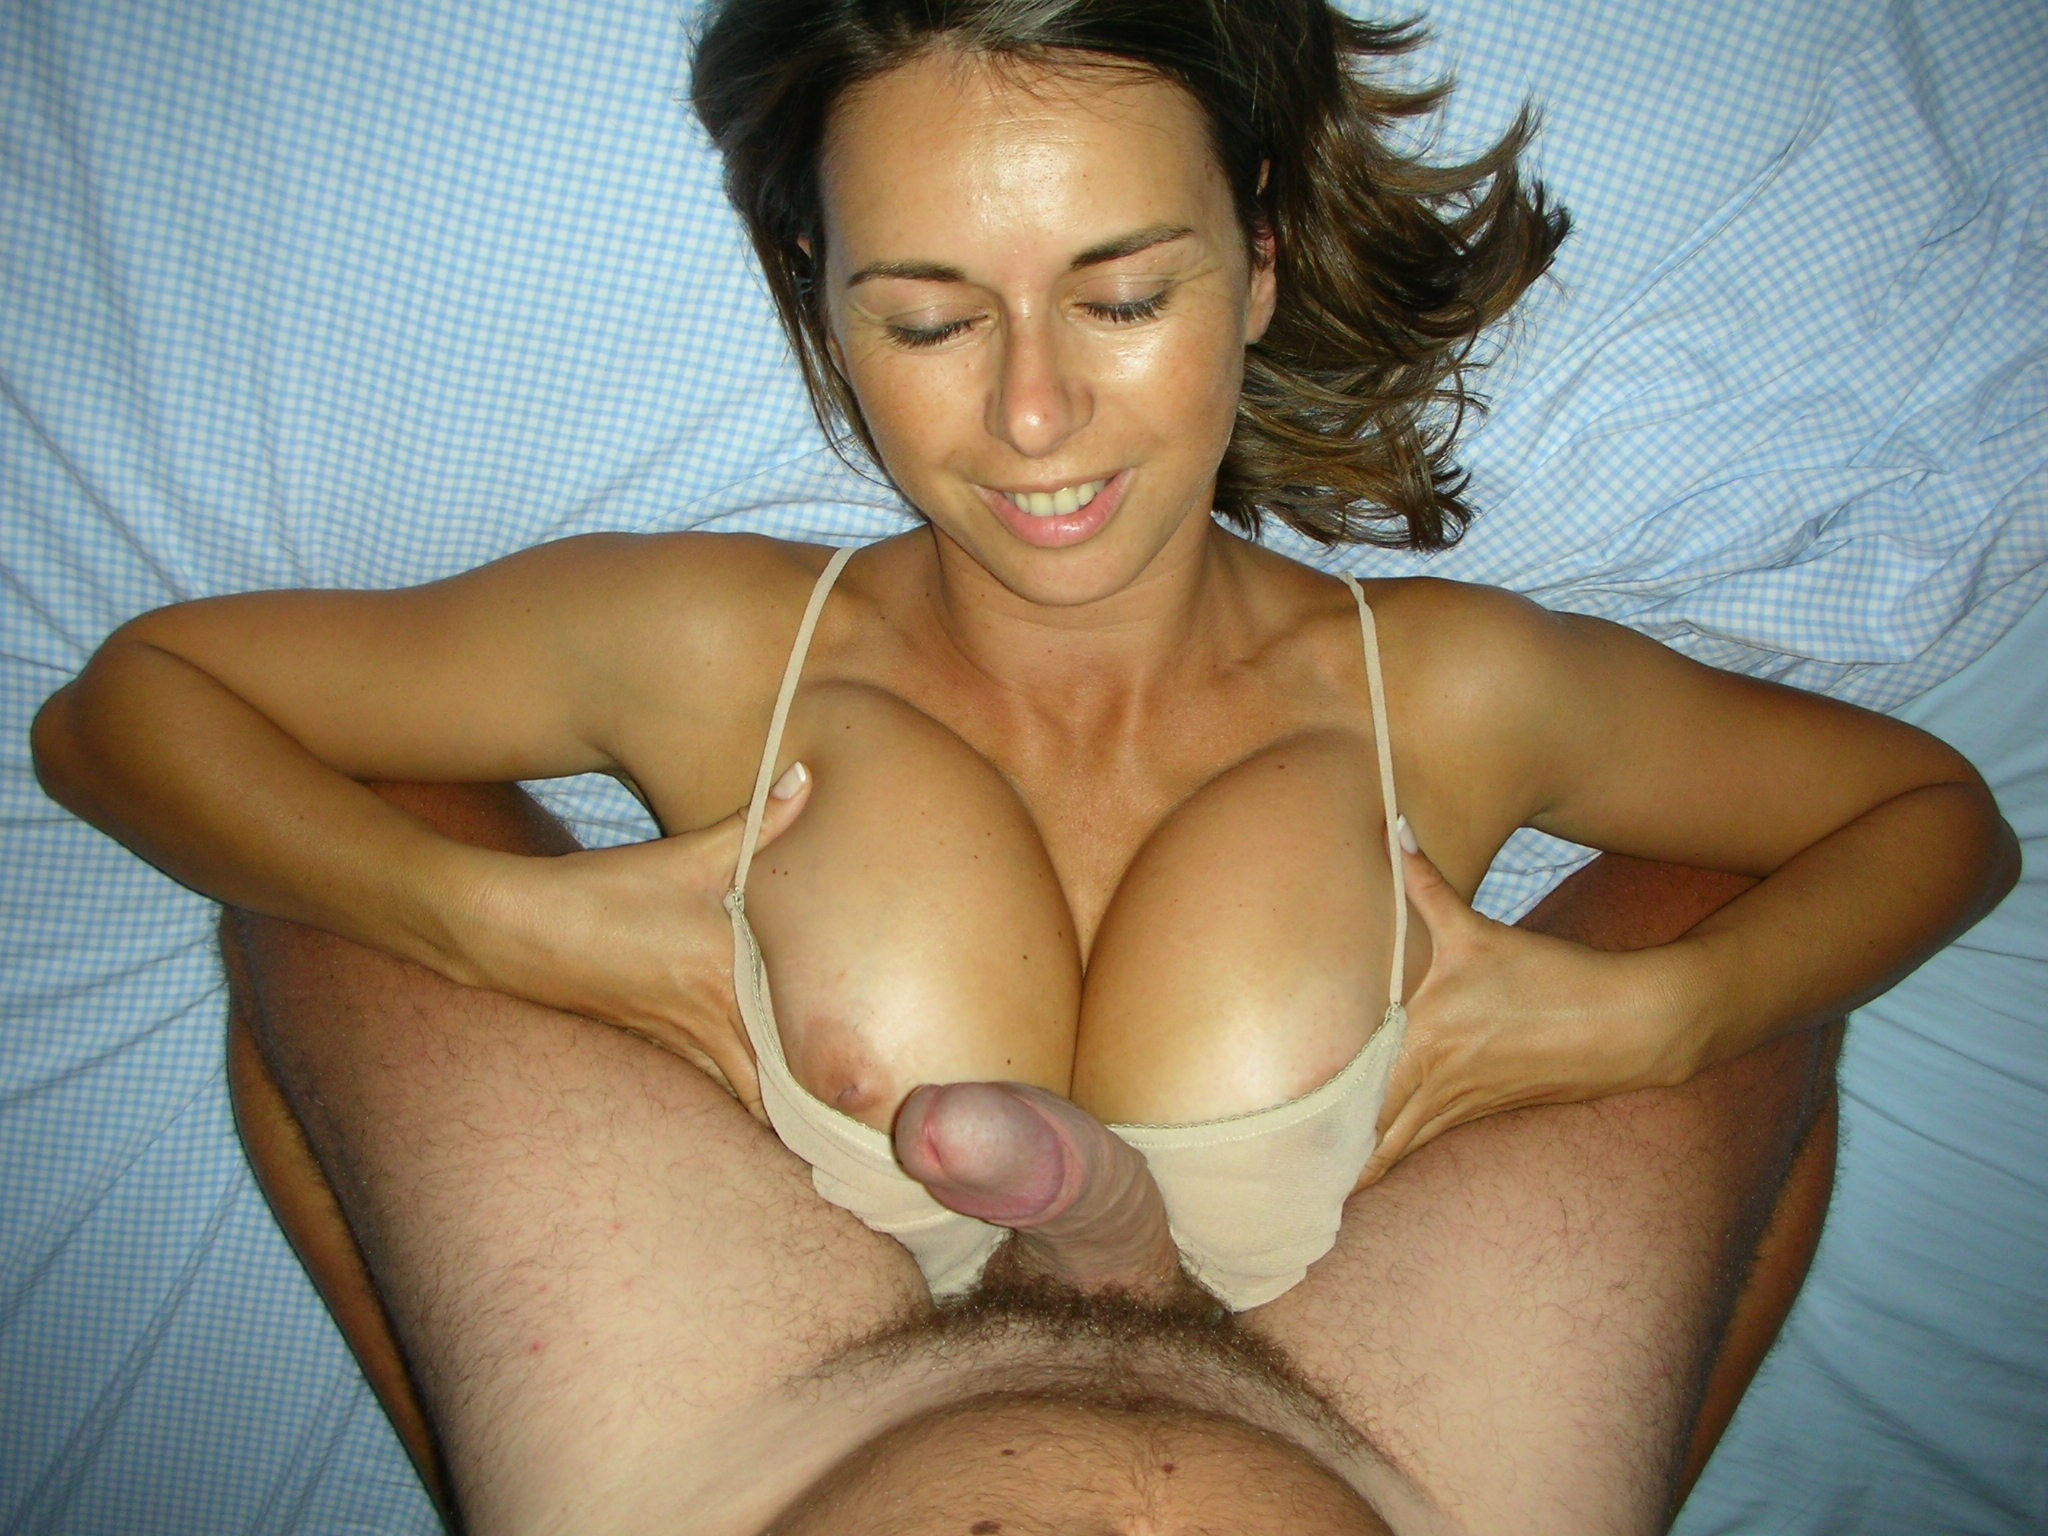 Large floppy tits upside down